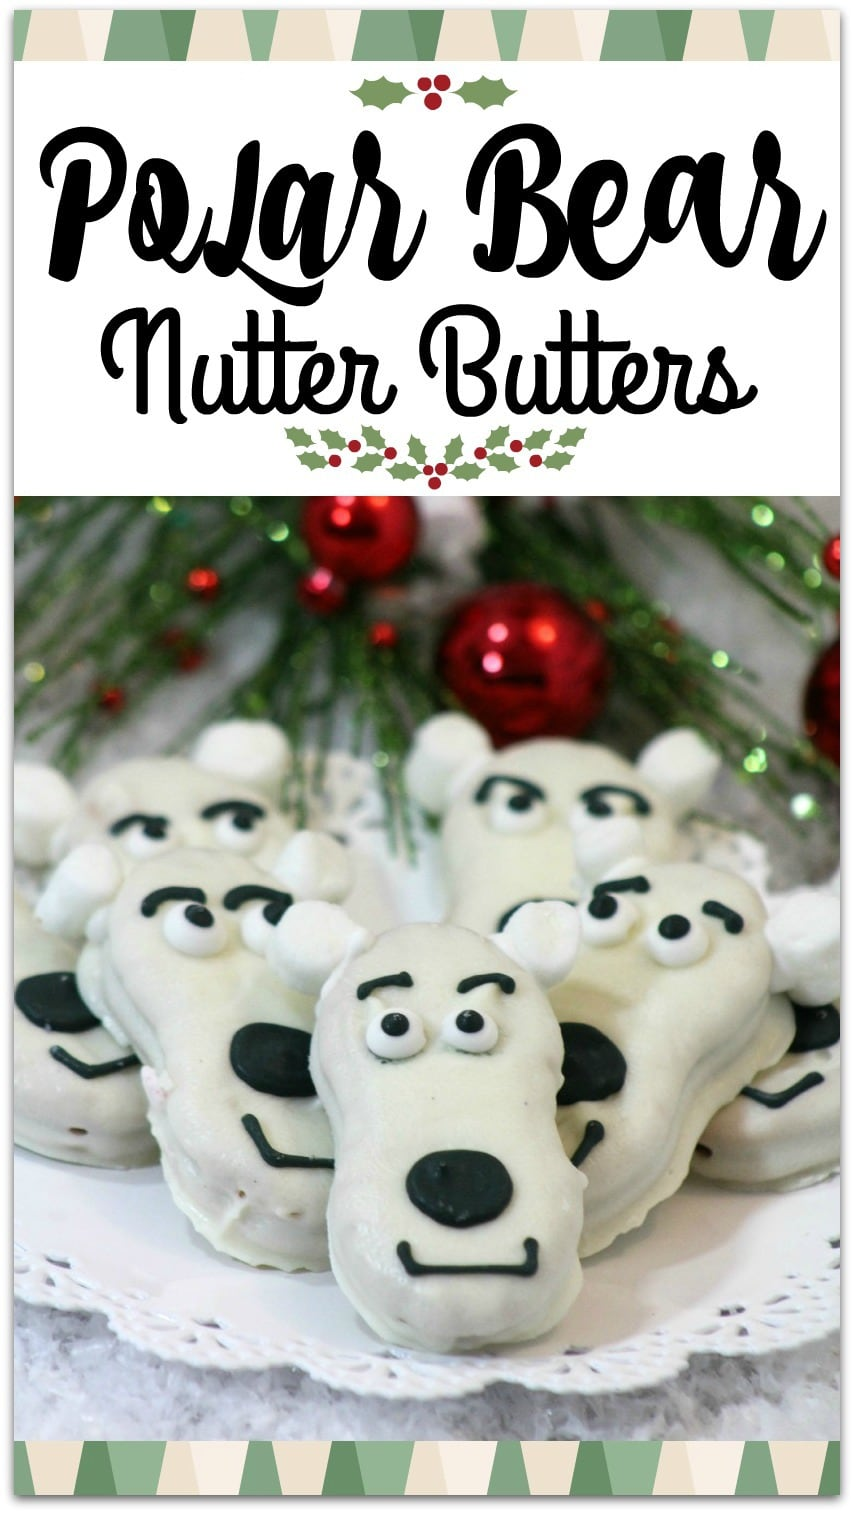 These Polar Bear Nutter Butter Cookies are so cute and would be a great dessert for a party. The kids will have fun decorating the cookies and the recipe is so easy, it won't keep you in the kitchen all day.